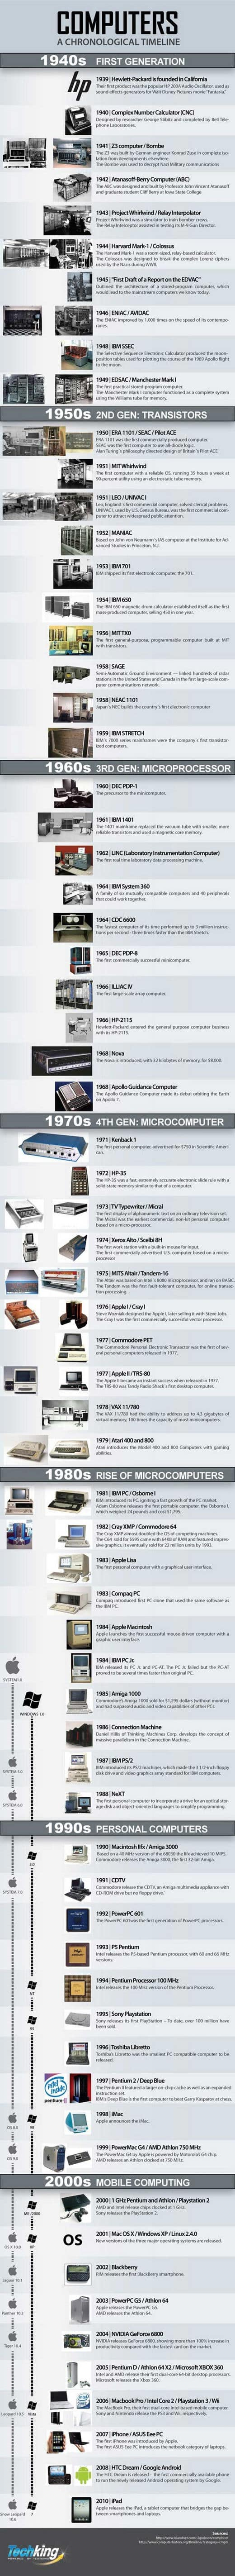 The History of Computers 1938 to 2010 Infographic